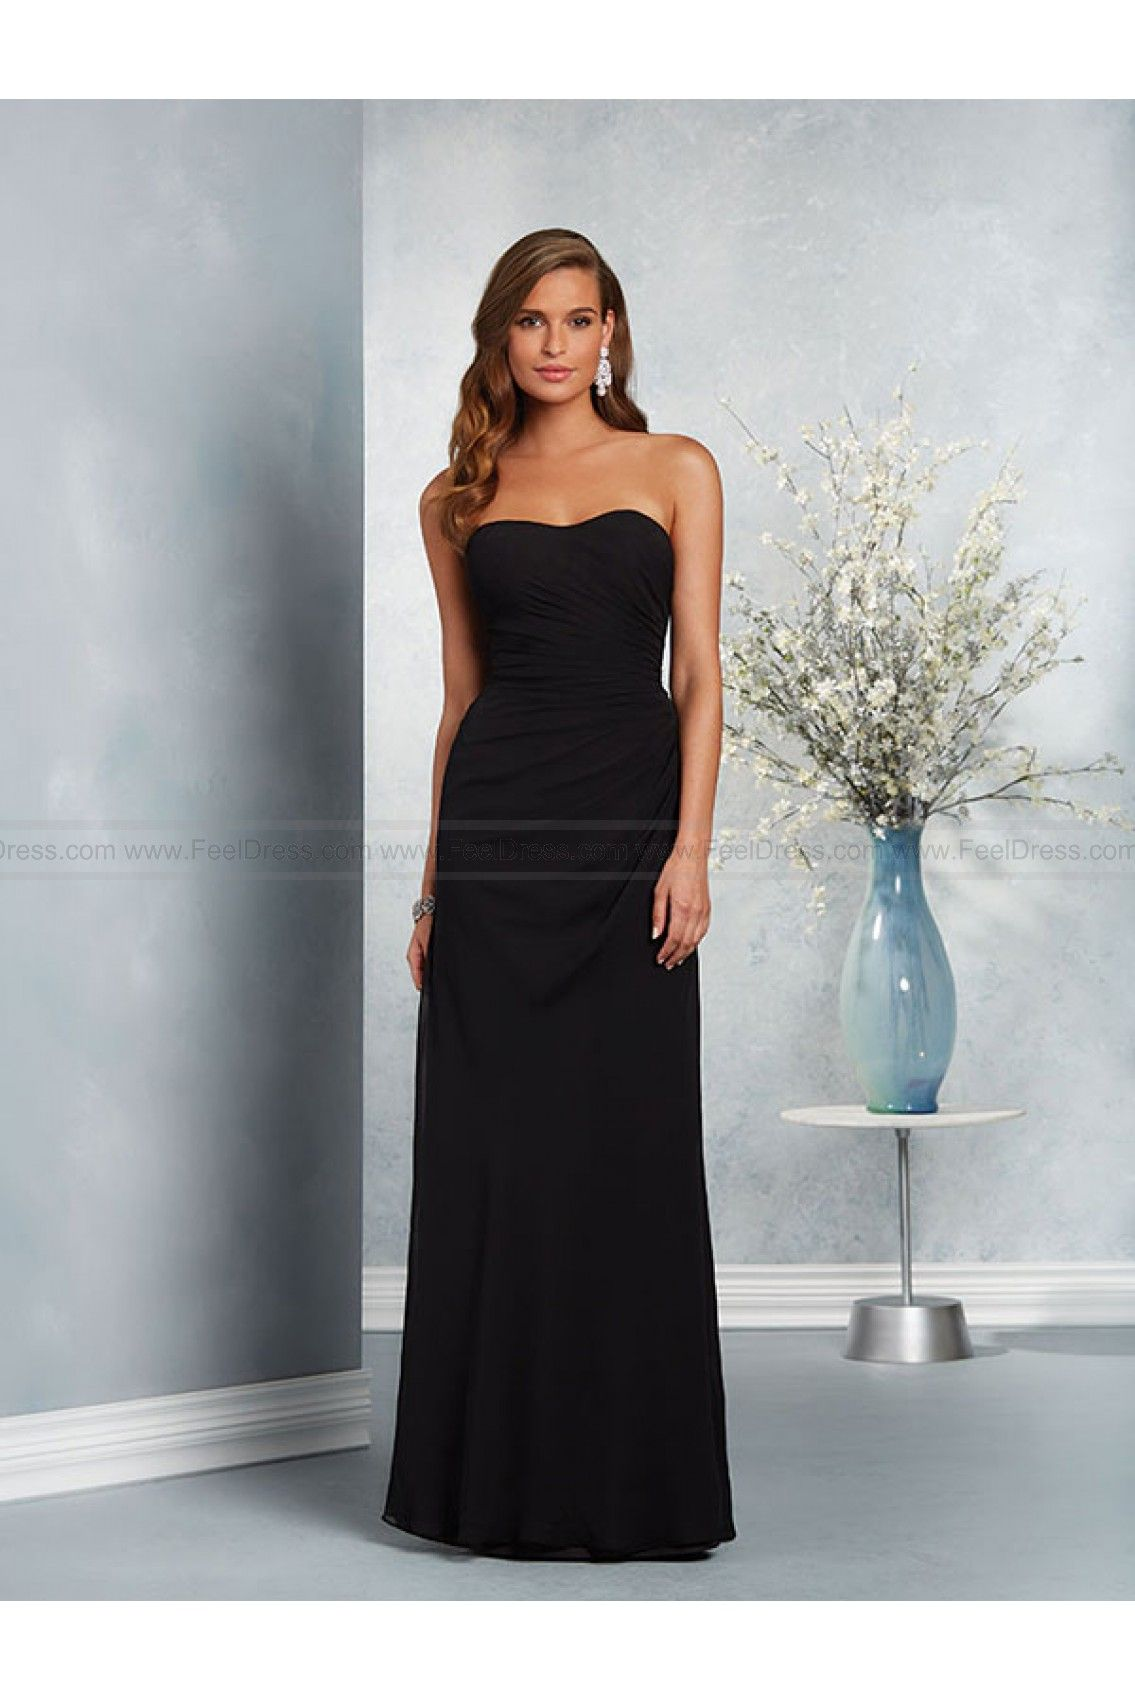 Alfred angelo bridesmaid dress style 7418 new alfred angelo alfred angelo bridesmaid dress style 7418 new ombrellifo Gallery